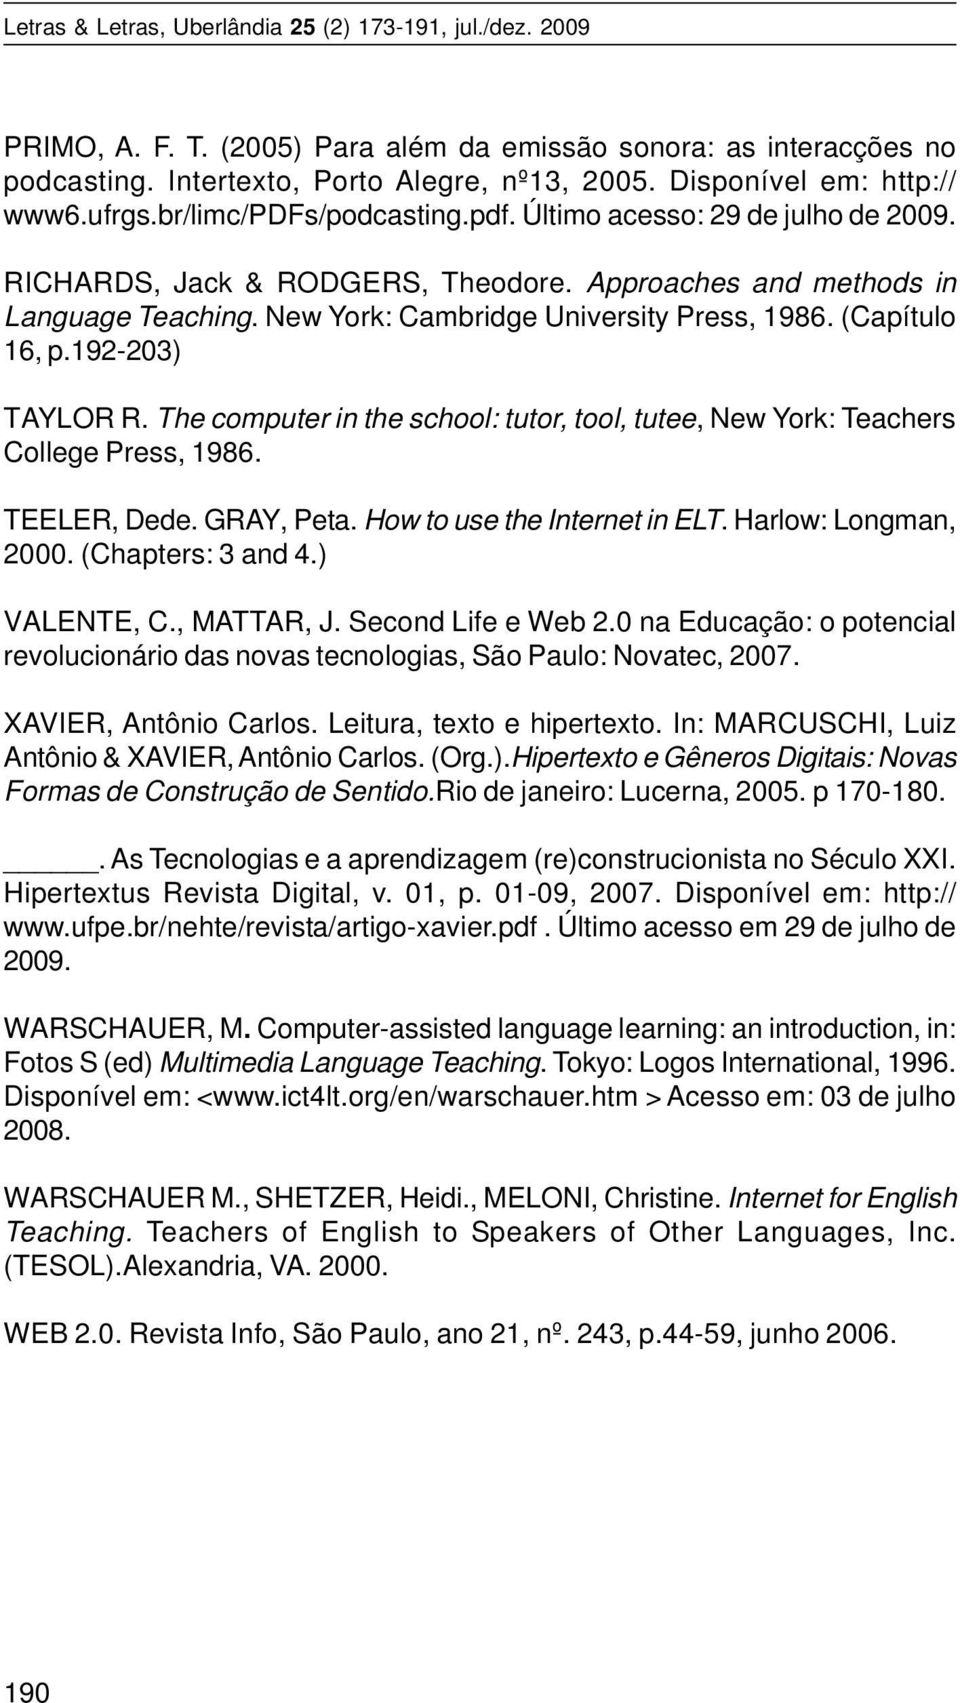 192-203) TAYLOR R. The computer in the school: tutor, tool, tutee, New York: Teachers College Press, 1986. TEELER, Dede. GRAY, Peta. How to use the Internet in ELT. Harlow: Longman, 2000.